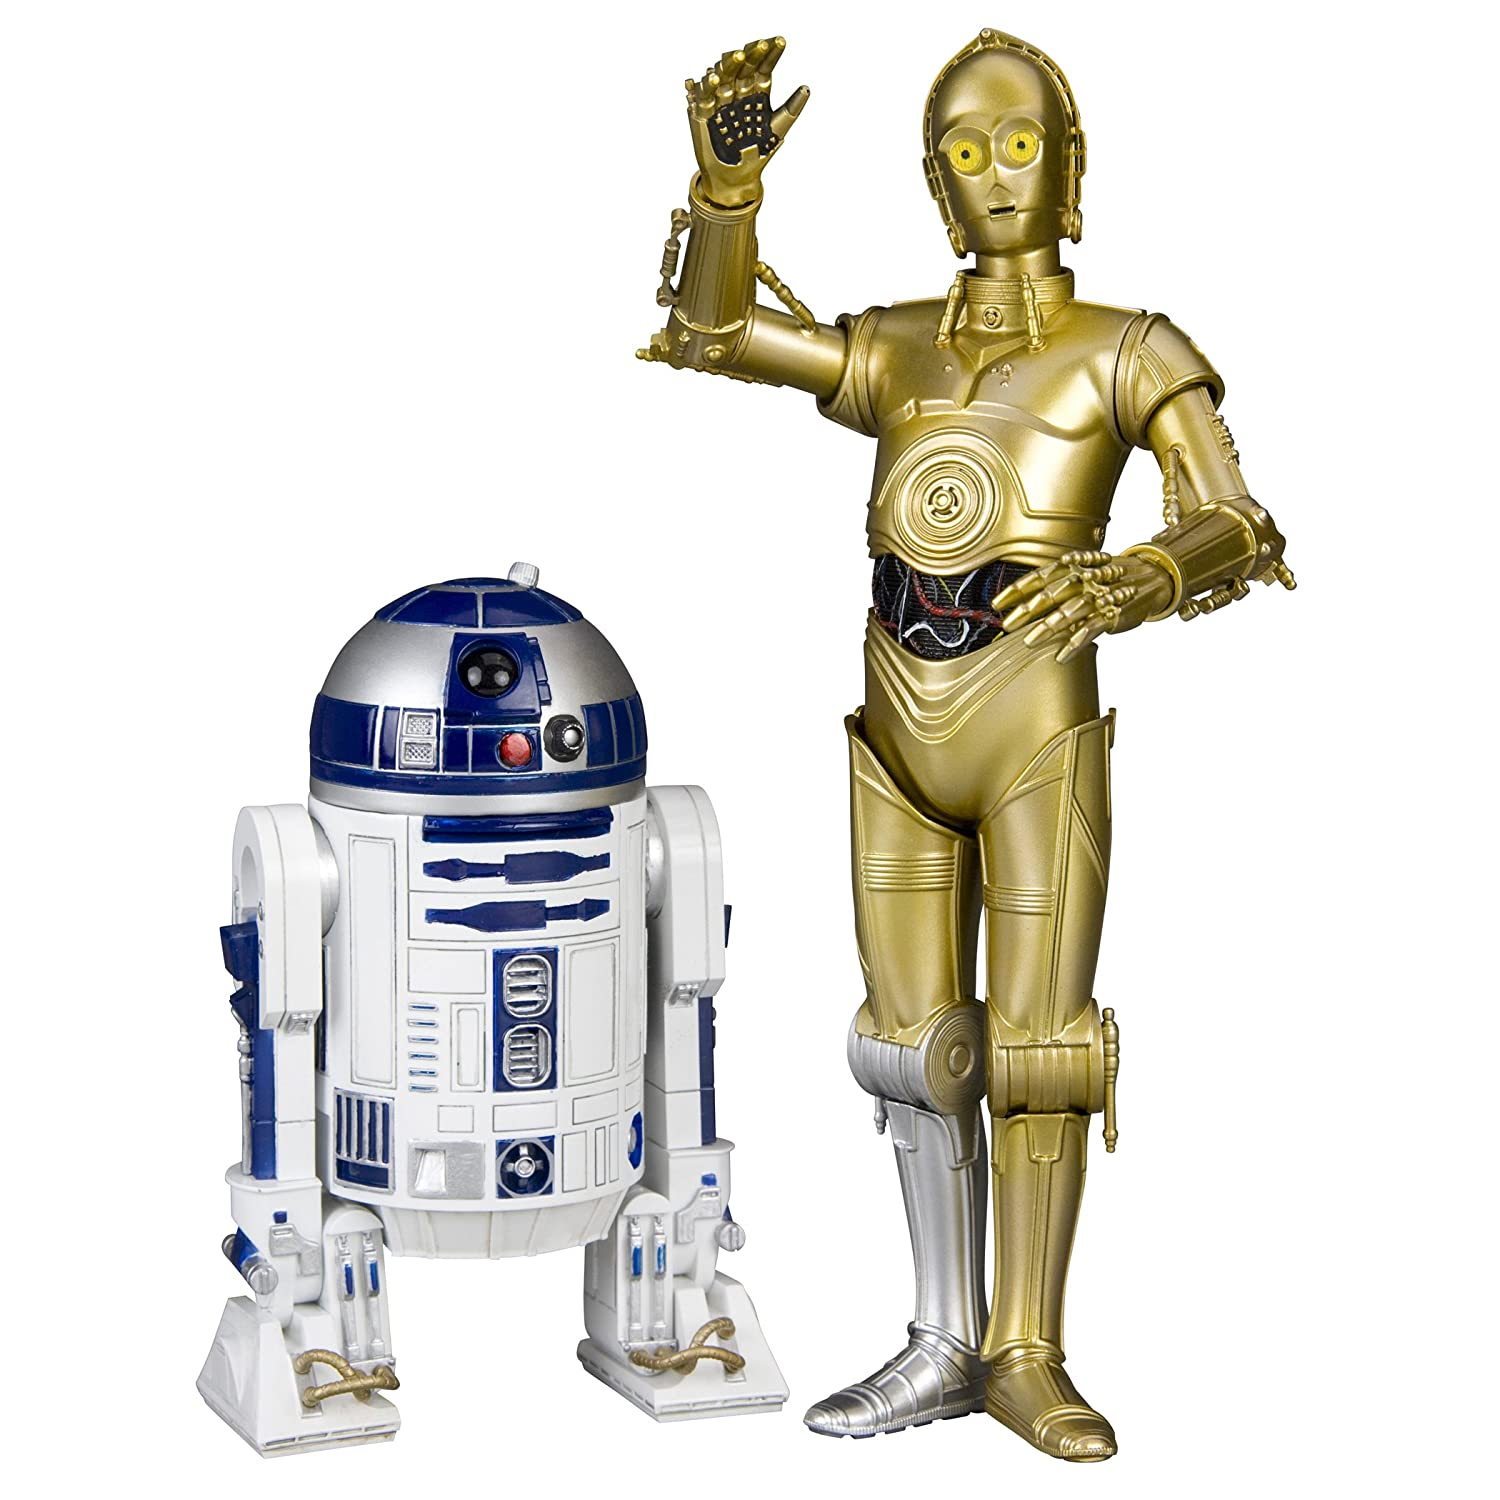 FIGURE!FIGURE!FIGURE!: C-3PO And R2-D2 by Star WarsR2d2 And C3po Drawing